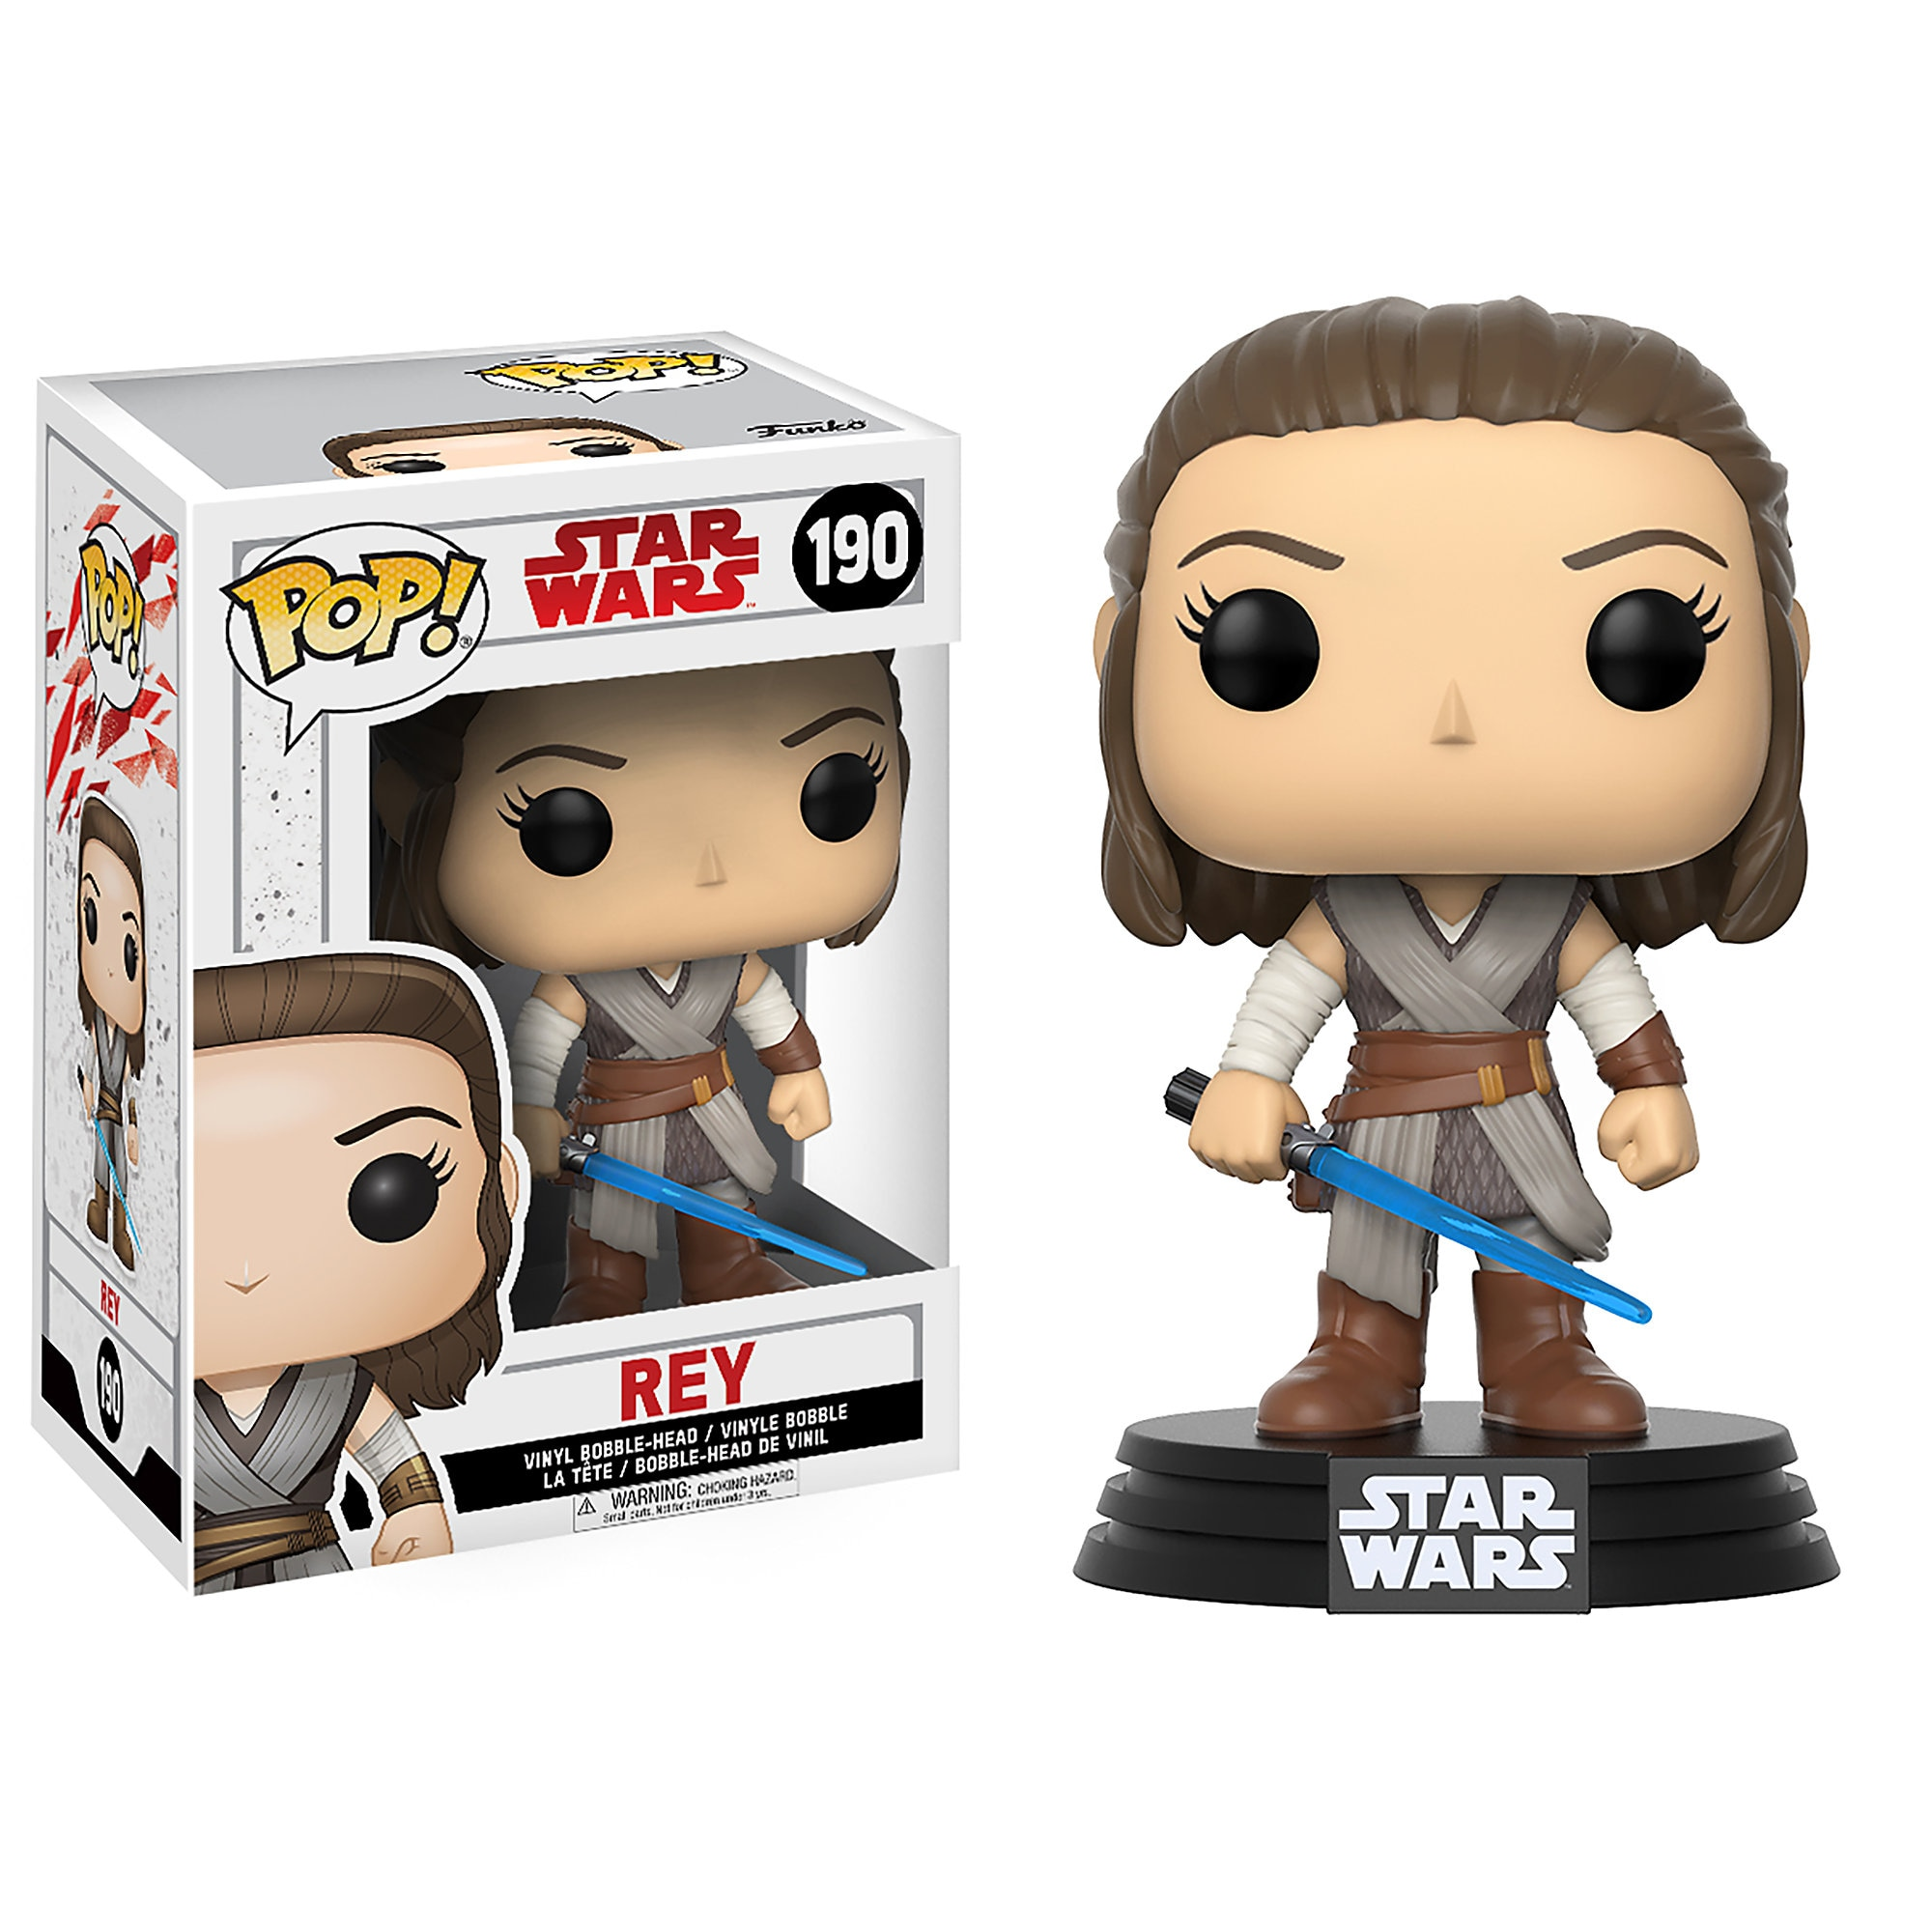 Rey Pop! Vinyl Bobble-Head Figure by Funko - Star Wars: The Last Jedi